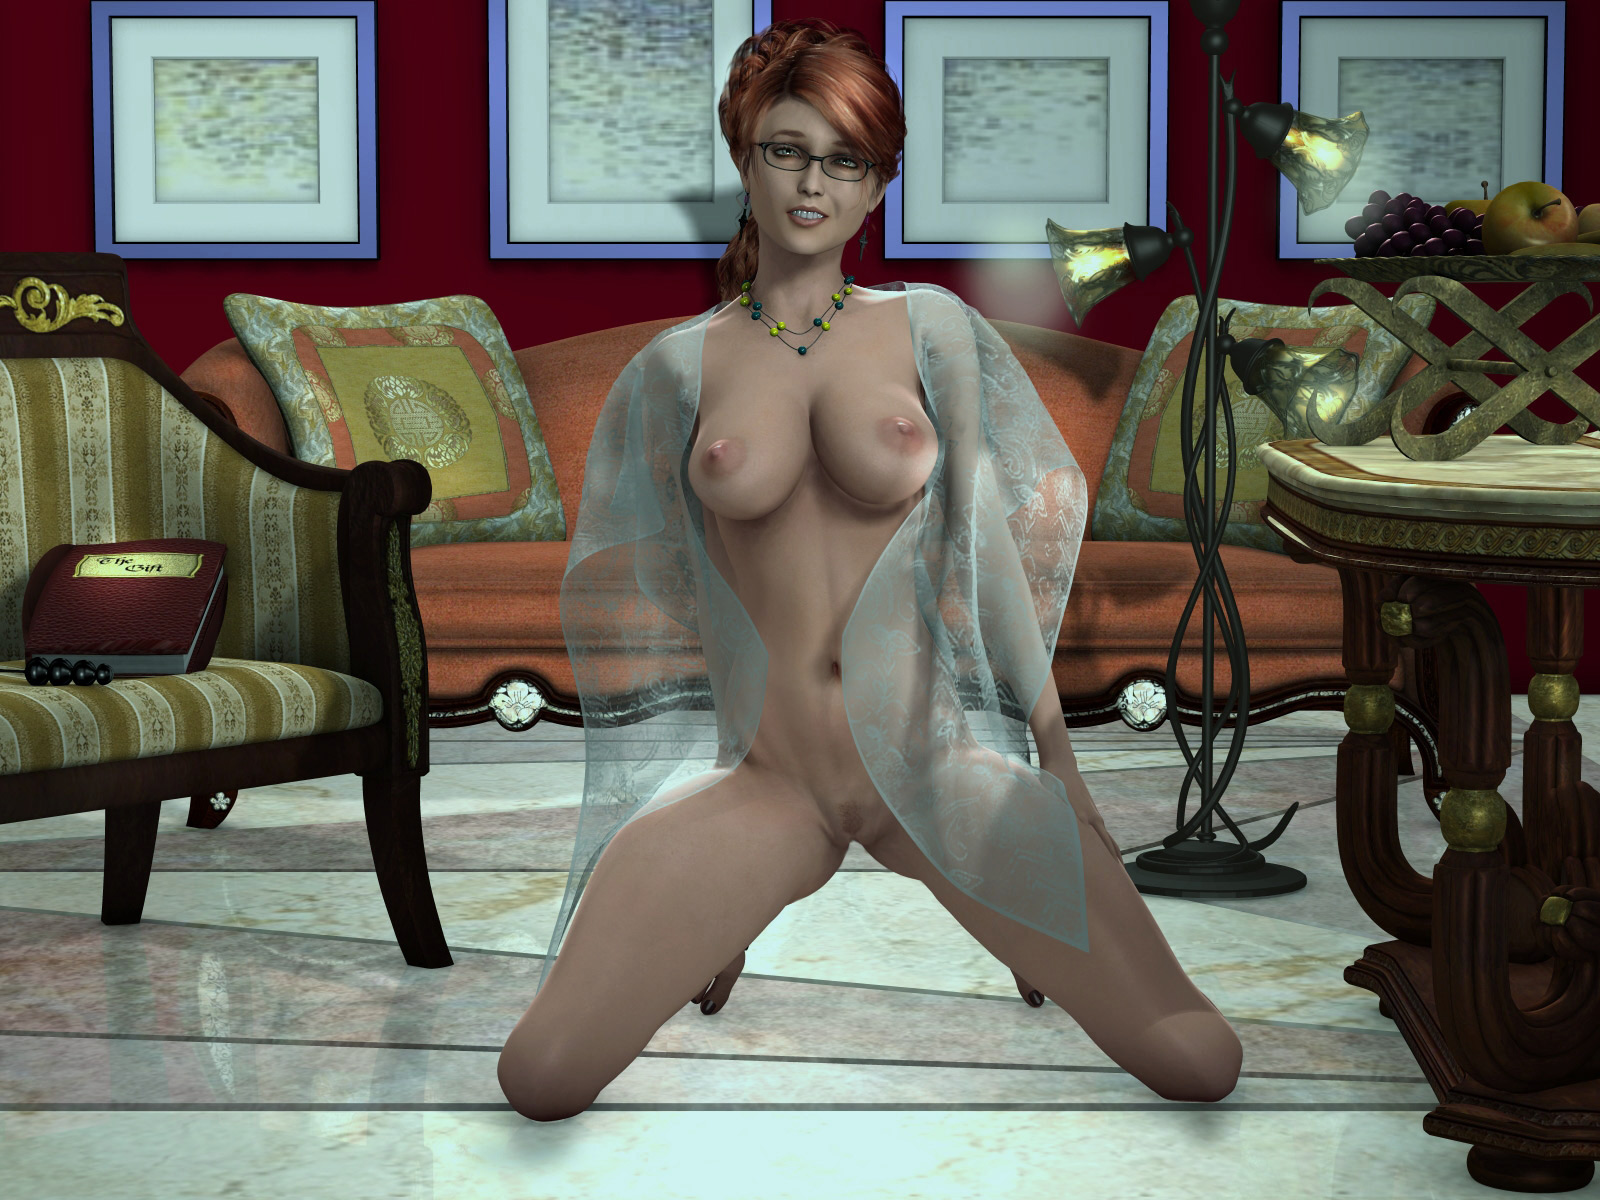 Hot nude anime 3d photos nackt scenes